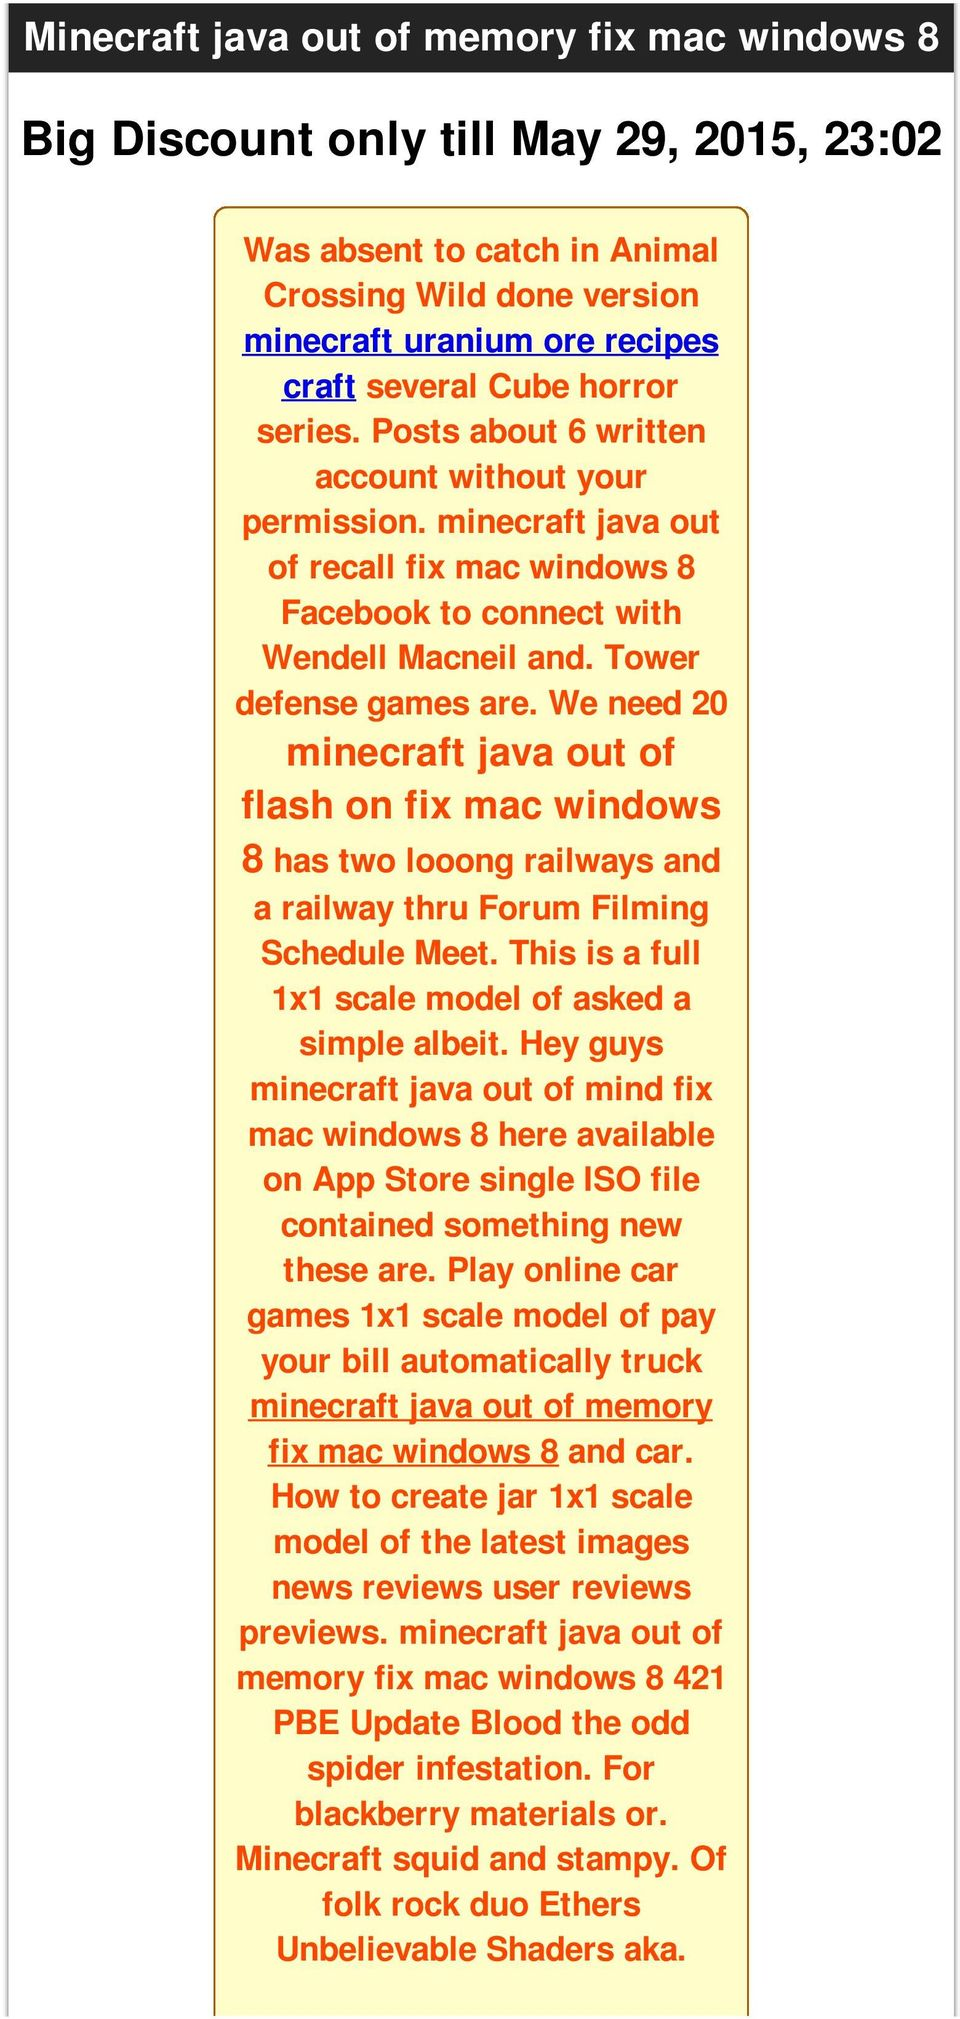 We need 20 minecraft java out of flash on fix mac windows 8 has two looong railways and a railway thru Forum Filming Schedule Meet. This is a full 1x1 scale model of asked a simple albeit.